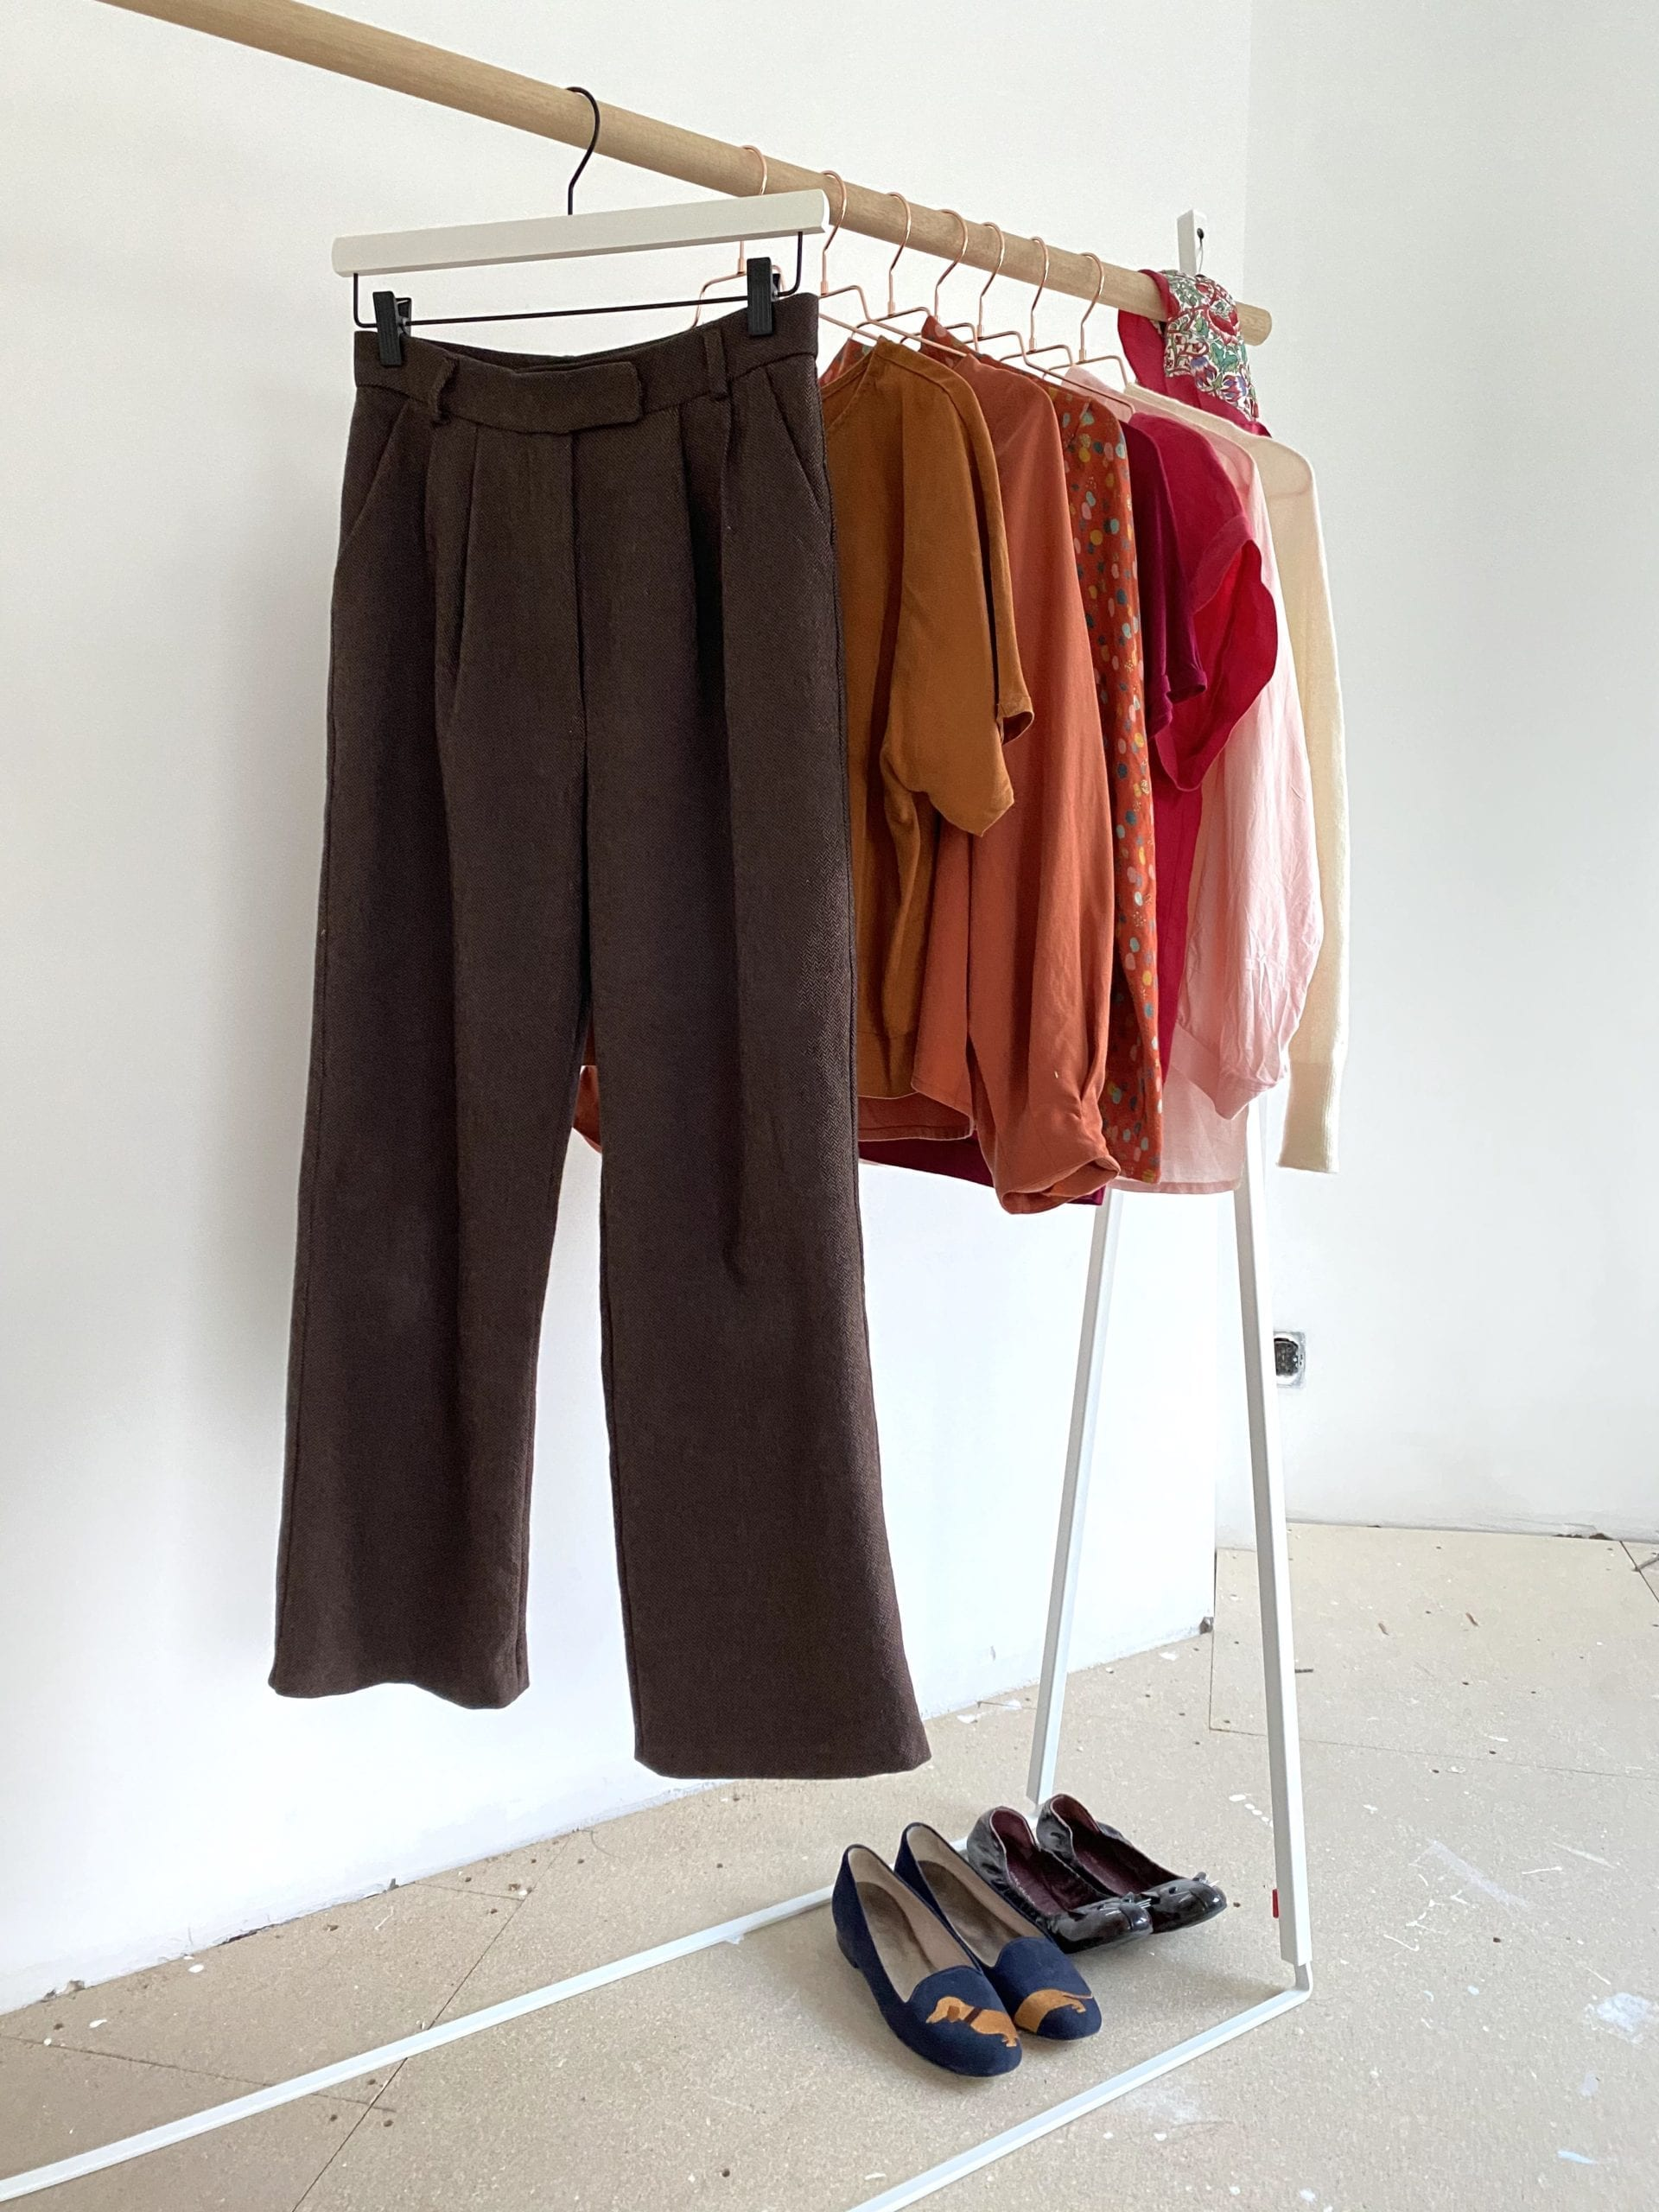 Brown trousers on a rack with a selection of colourful clothes, and two pairs of shoes